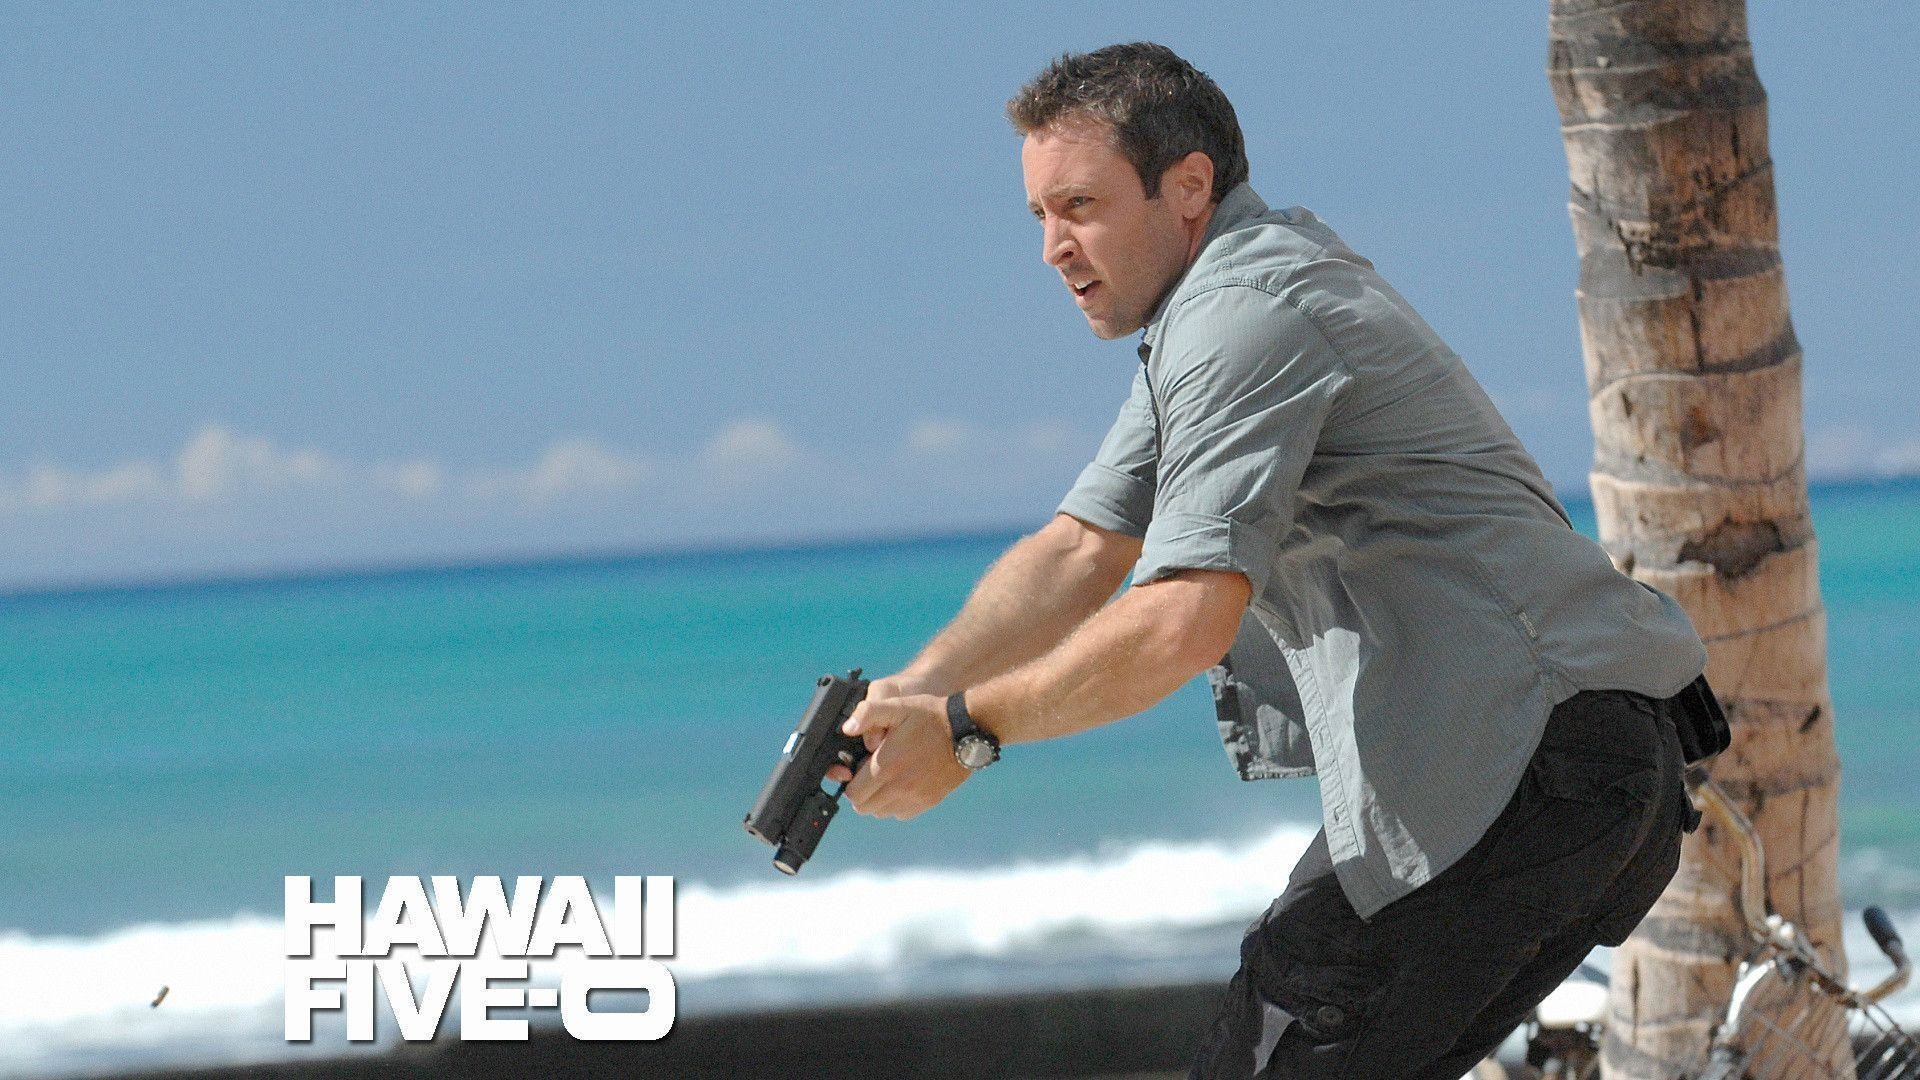 Hawaii Five O Wallpaper 77 Pictures